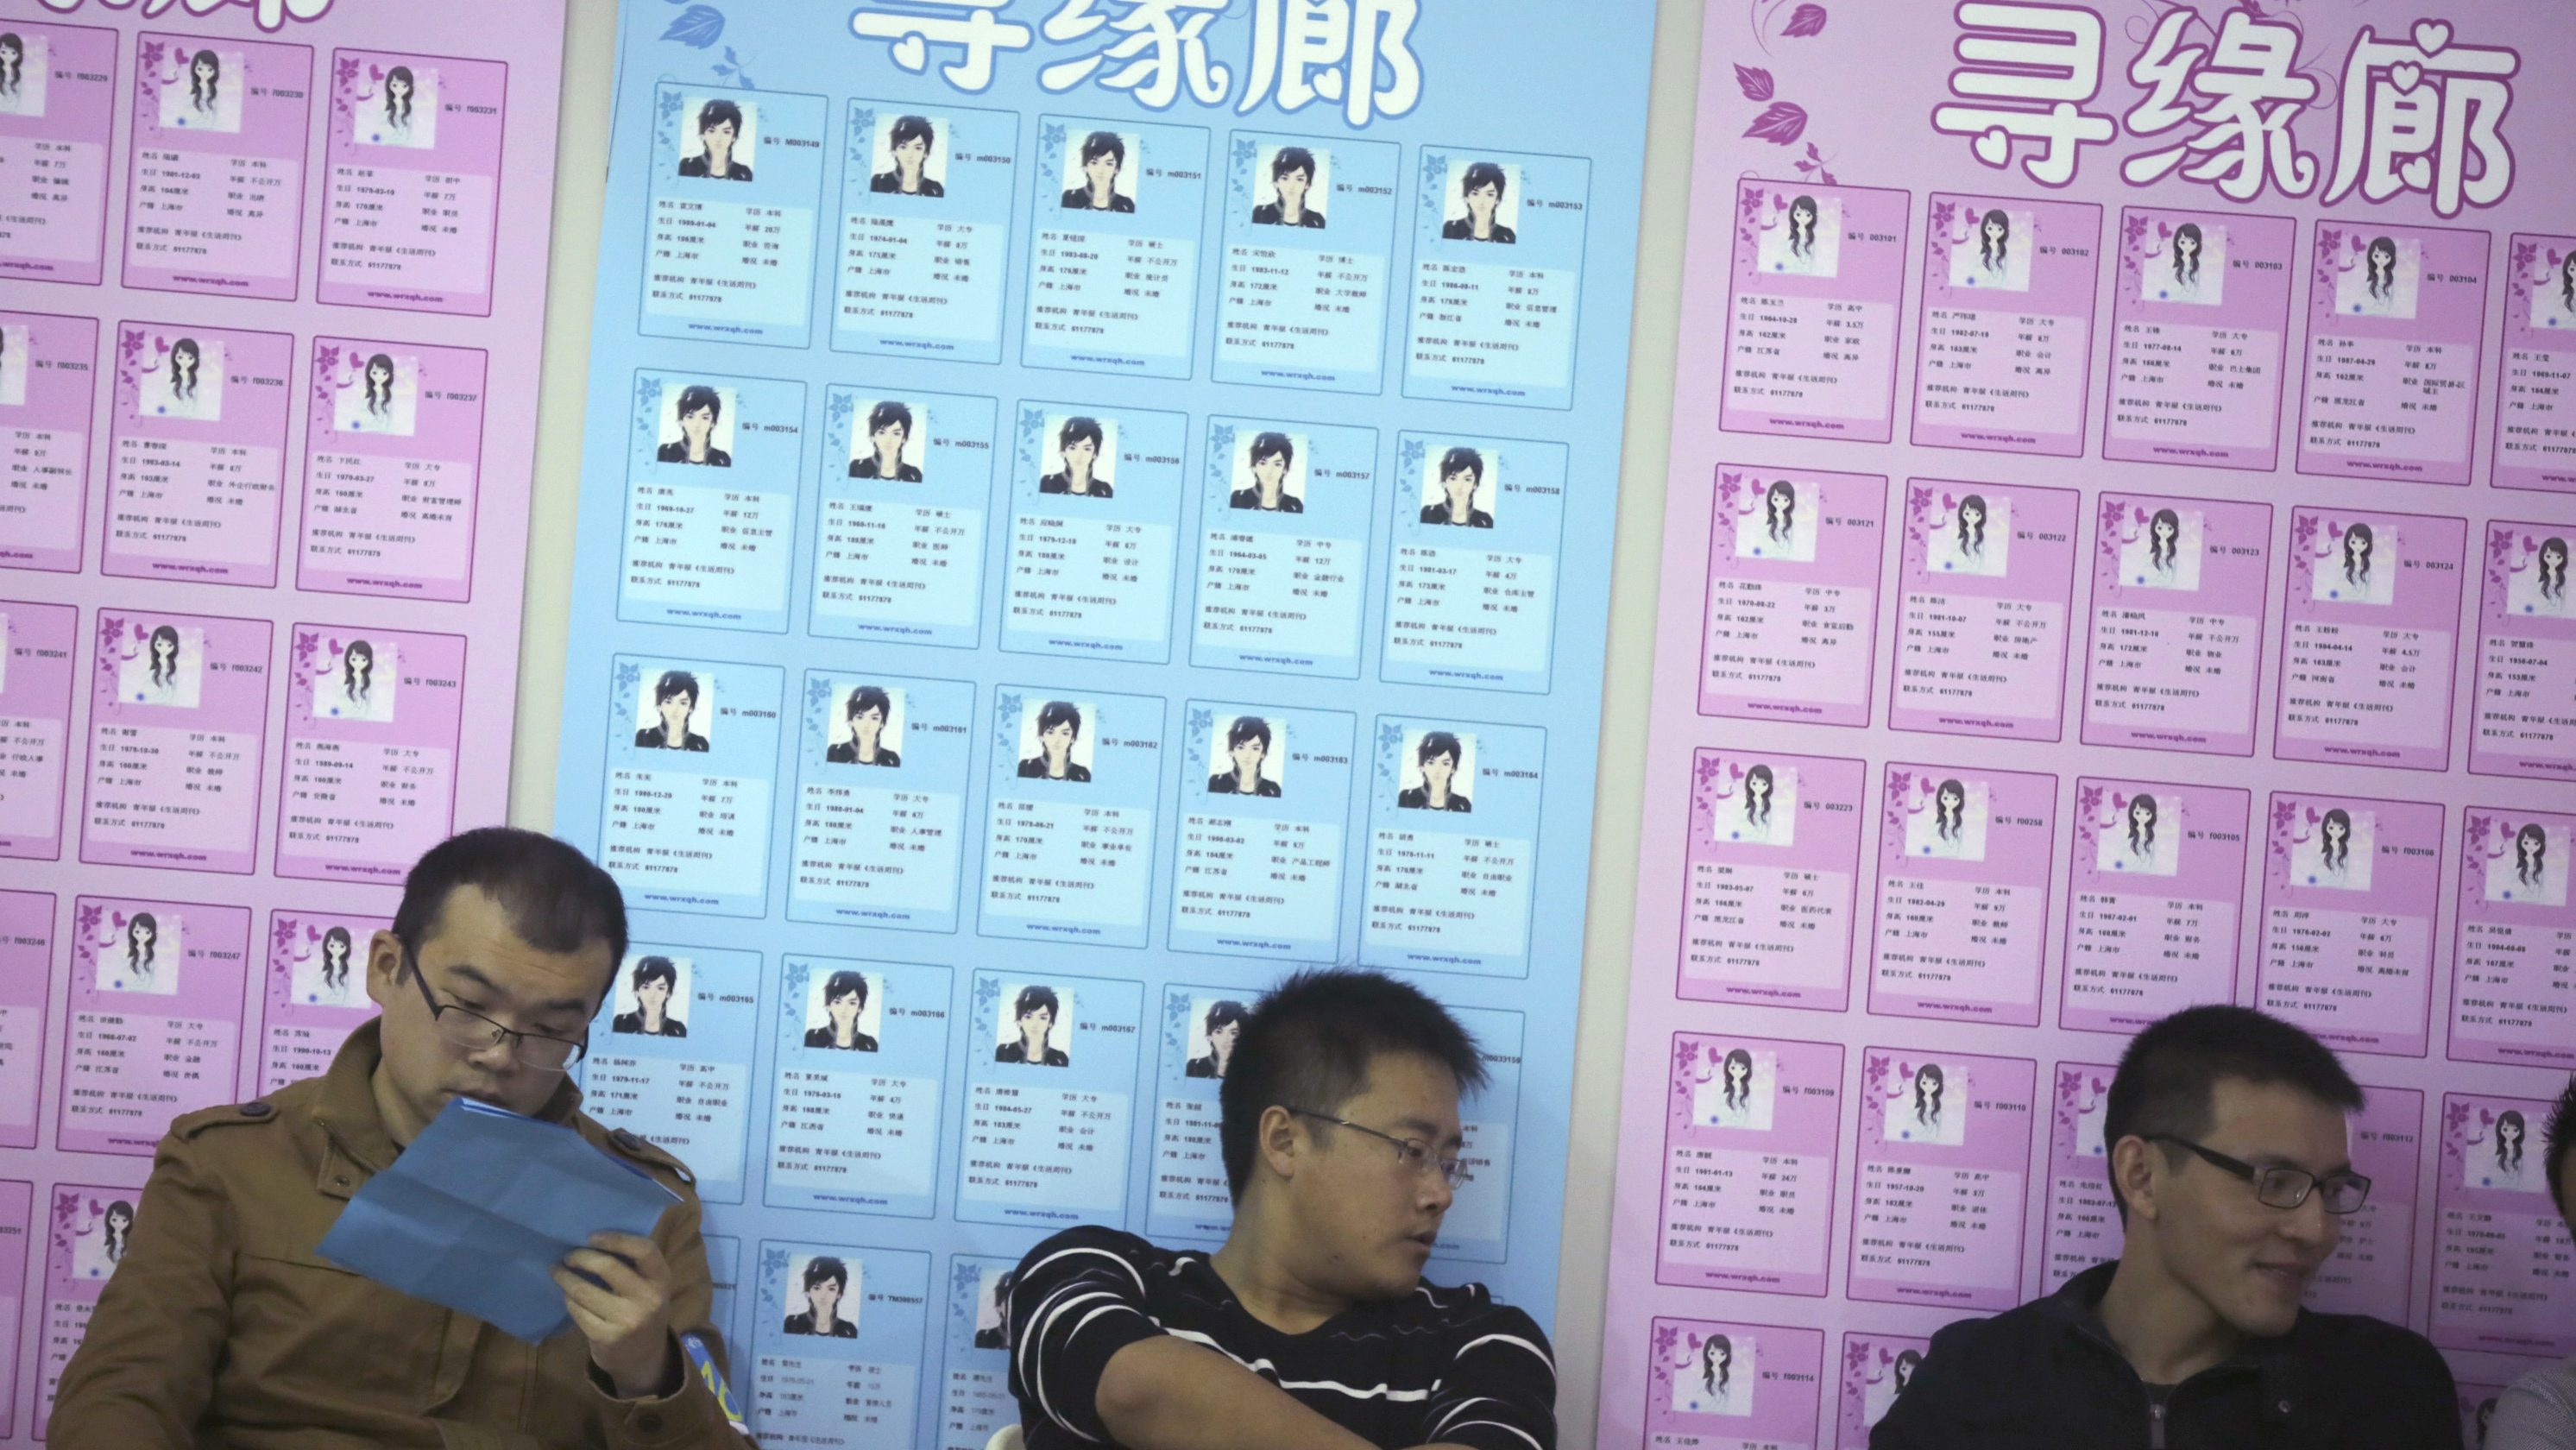 """Male participants take part of a bachelor's meeting event during a mass match-making event ahead of Singles Day in Shanghai, China, Saturday, Nov. 9, 2013. Singles Day was begun by Chinese college students in the 1990s as a version of Valentine's Day for people without romantic partners. The timing was based on the date Nov. 11, or """"11.11"""" — four singles. (AP Photo/Eugene Hoshiko)"""